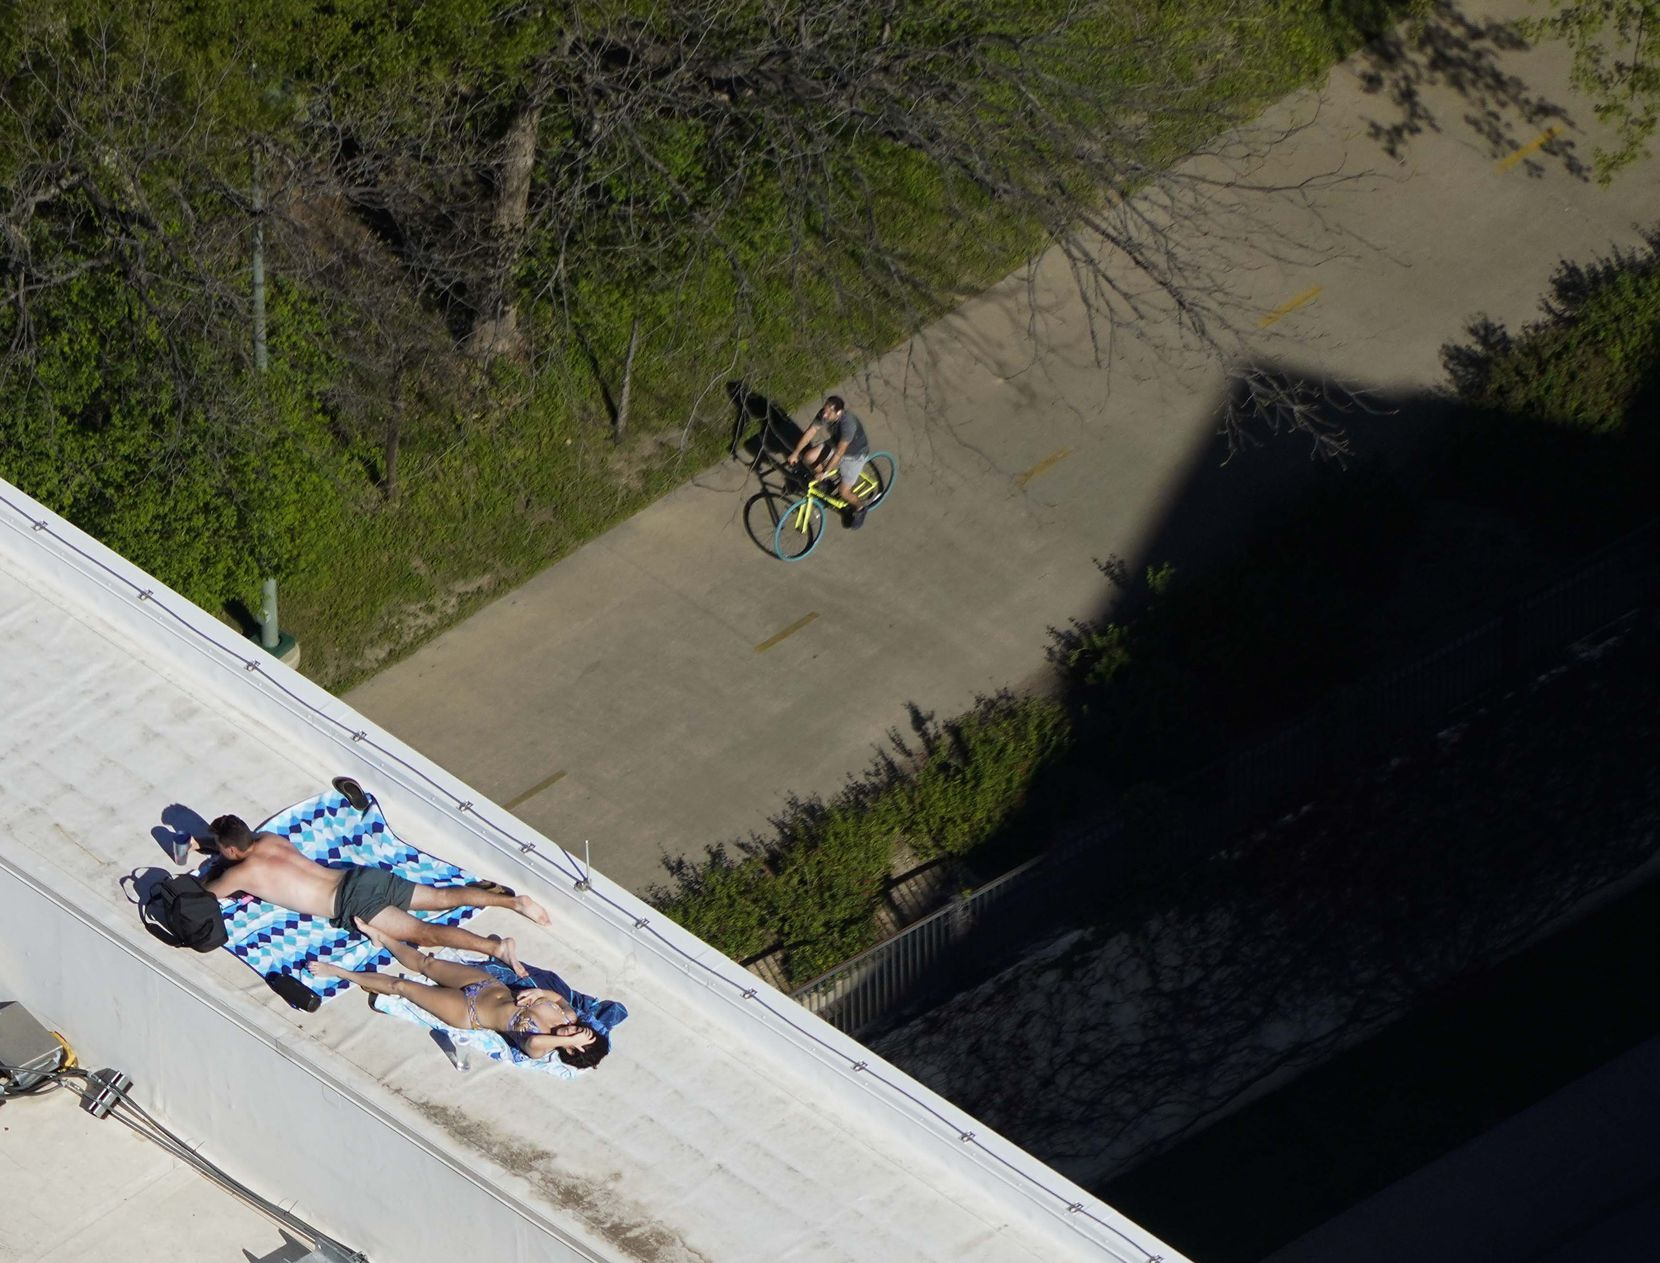 A couple sunbathes on the roof of the The Katy in Victory Park Apartments as a man rides by on a bike on Tuesday, March 24, 2020 in Dallas.